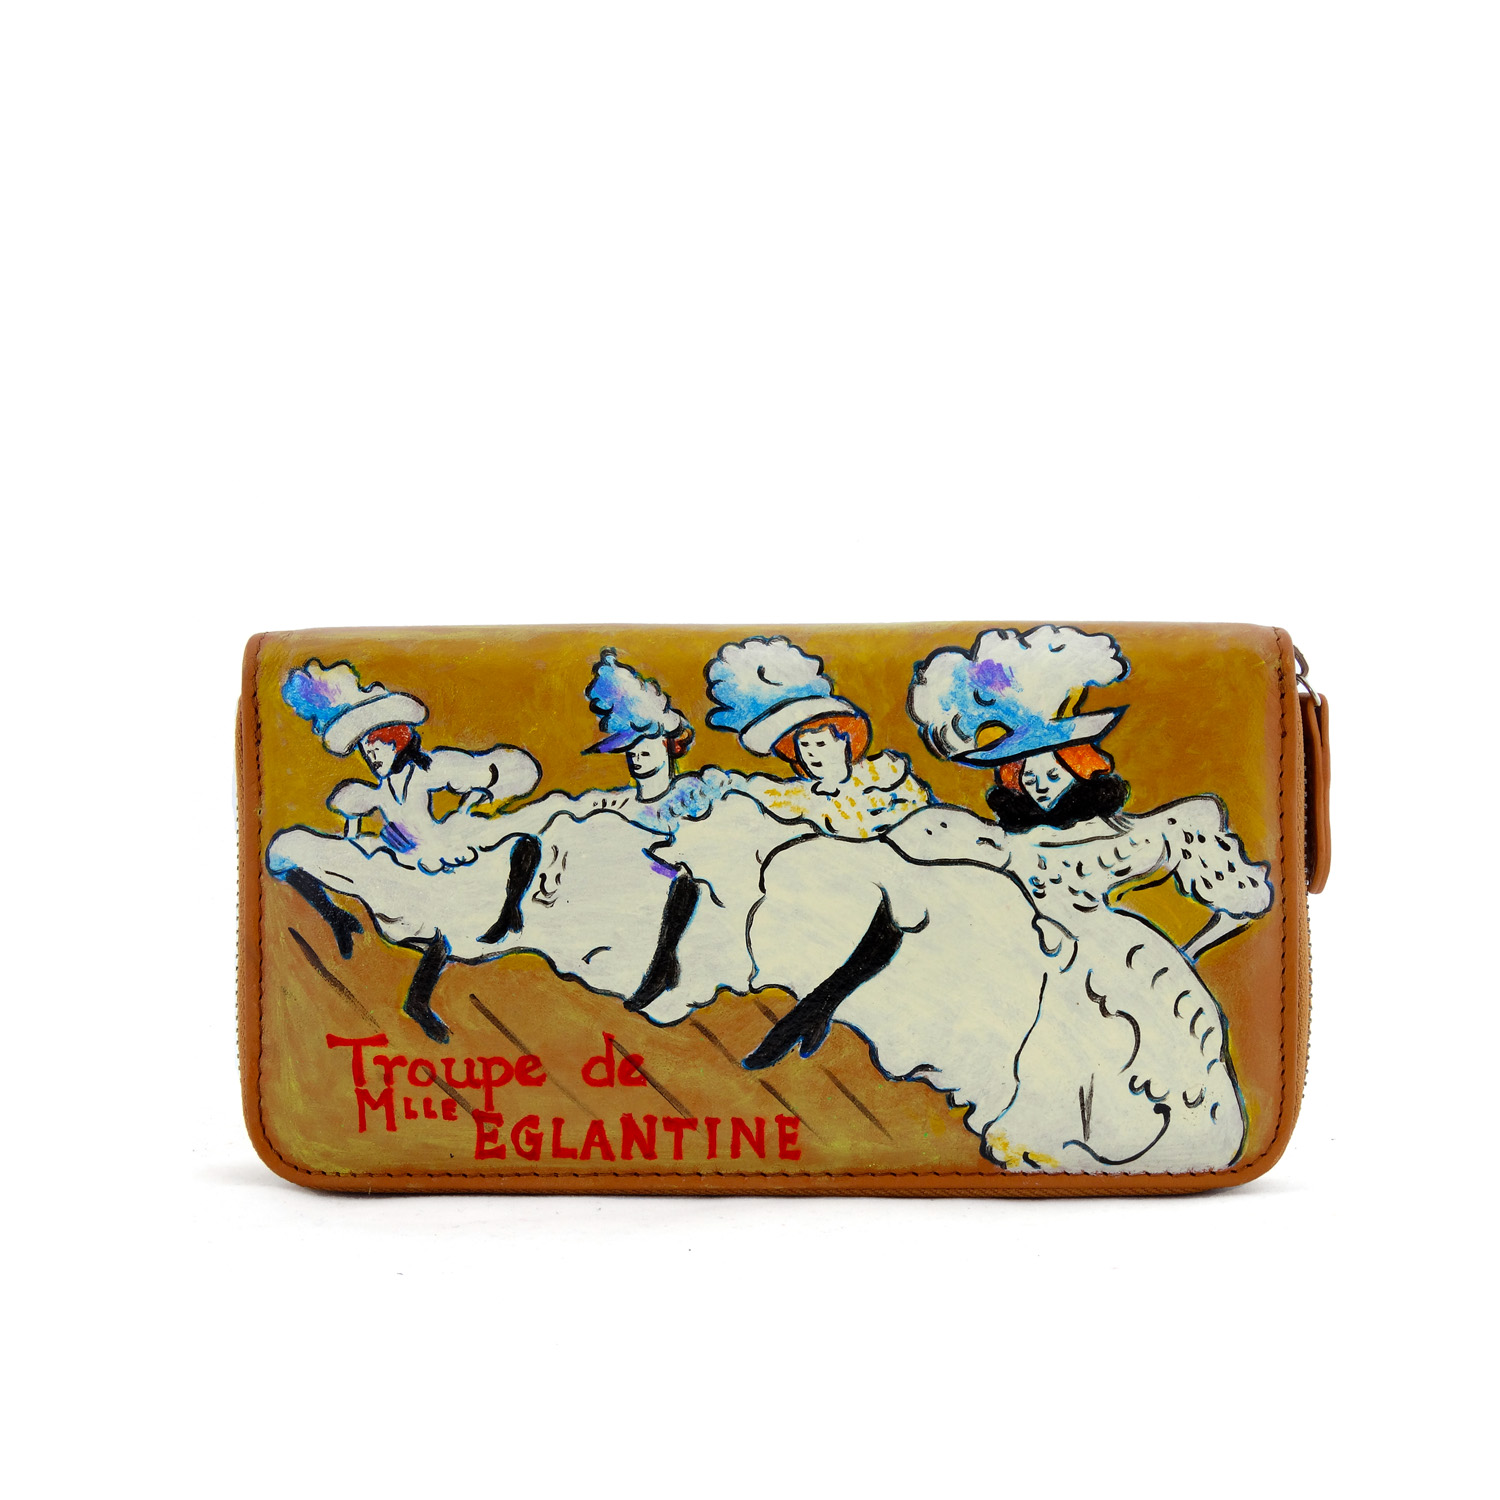 Hand painted wallet - La Troupe de Mlle Eglantine by Lautrec